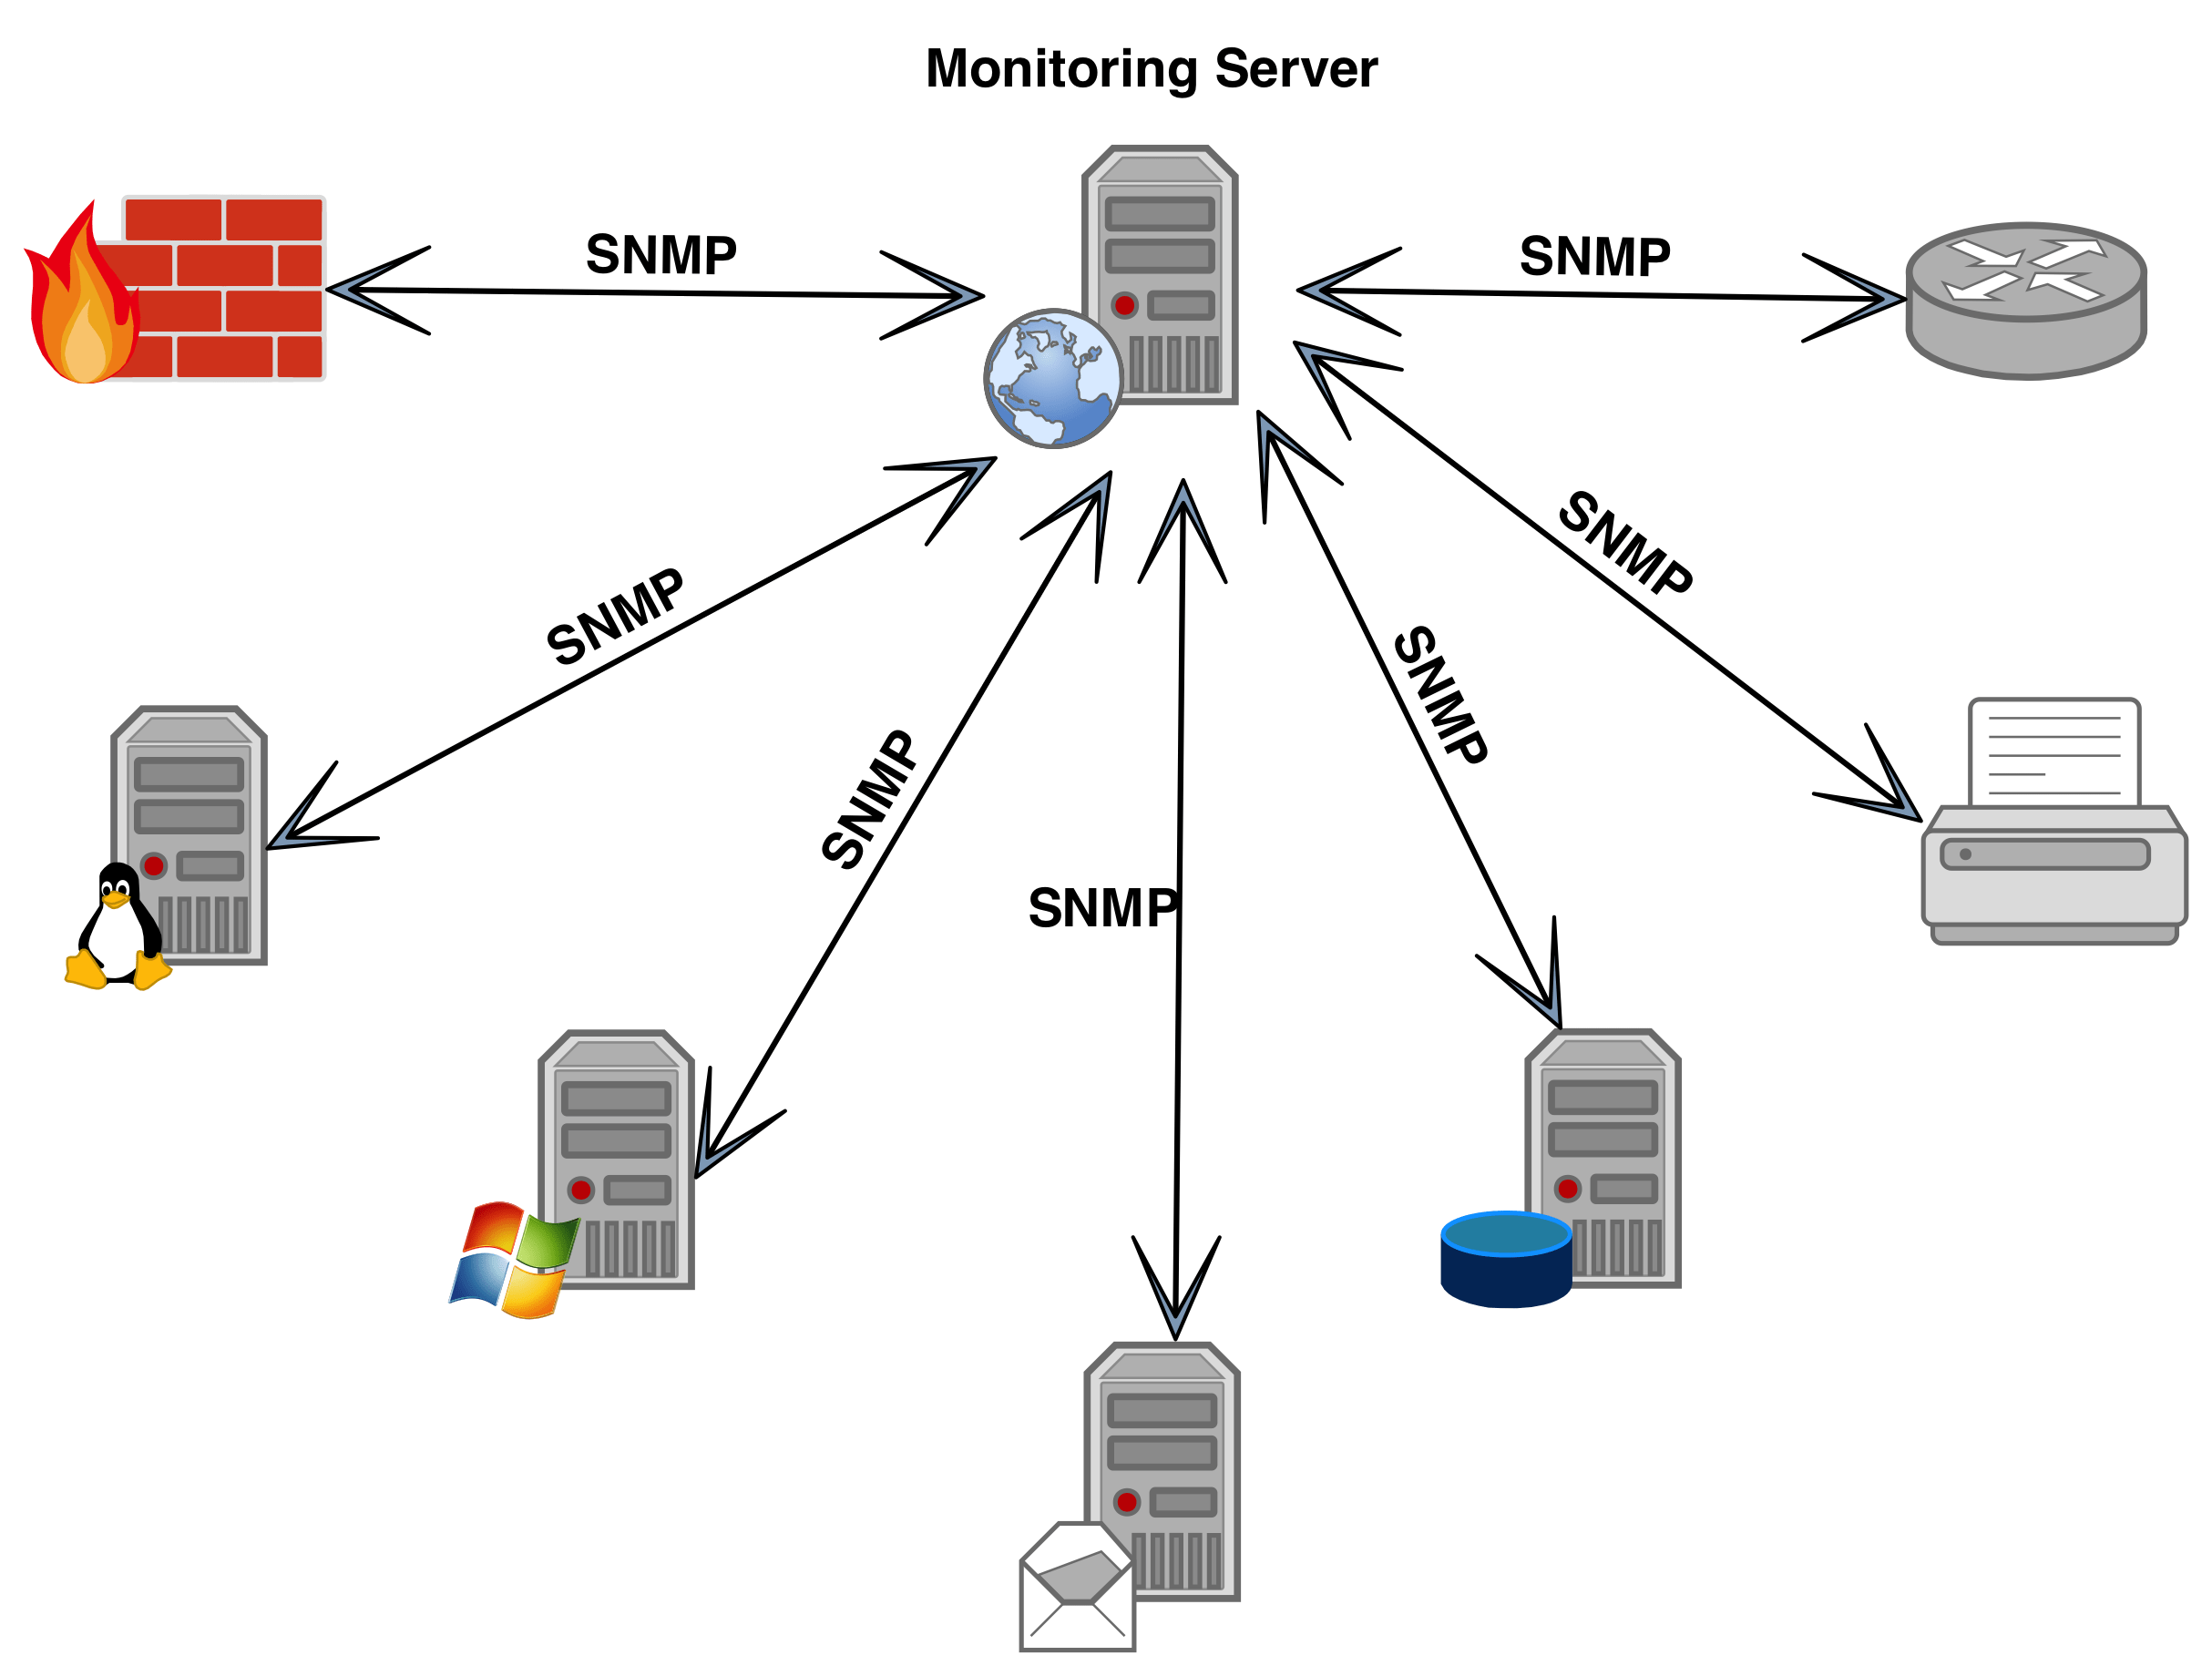 Network Simulation To Test Snmp